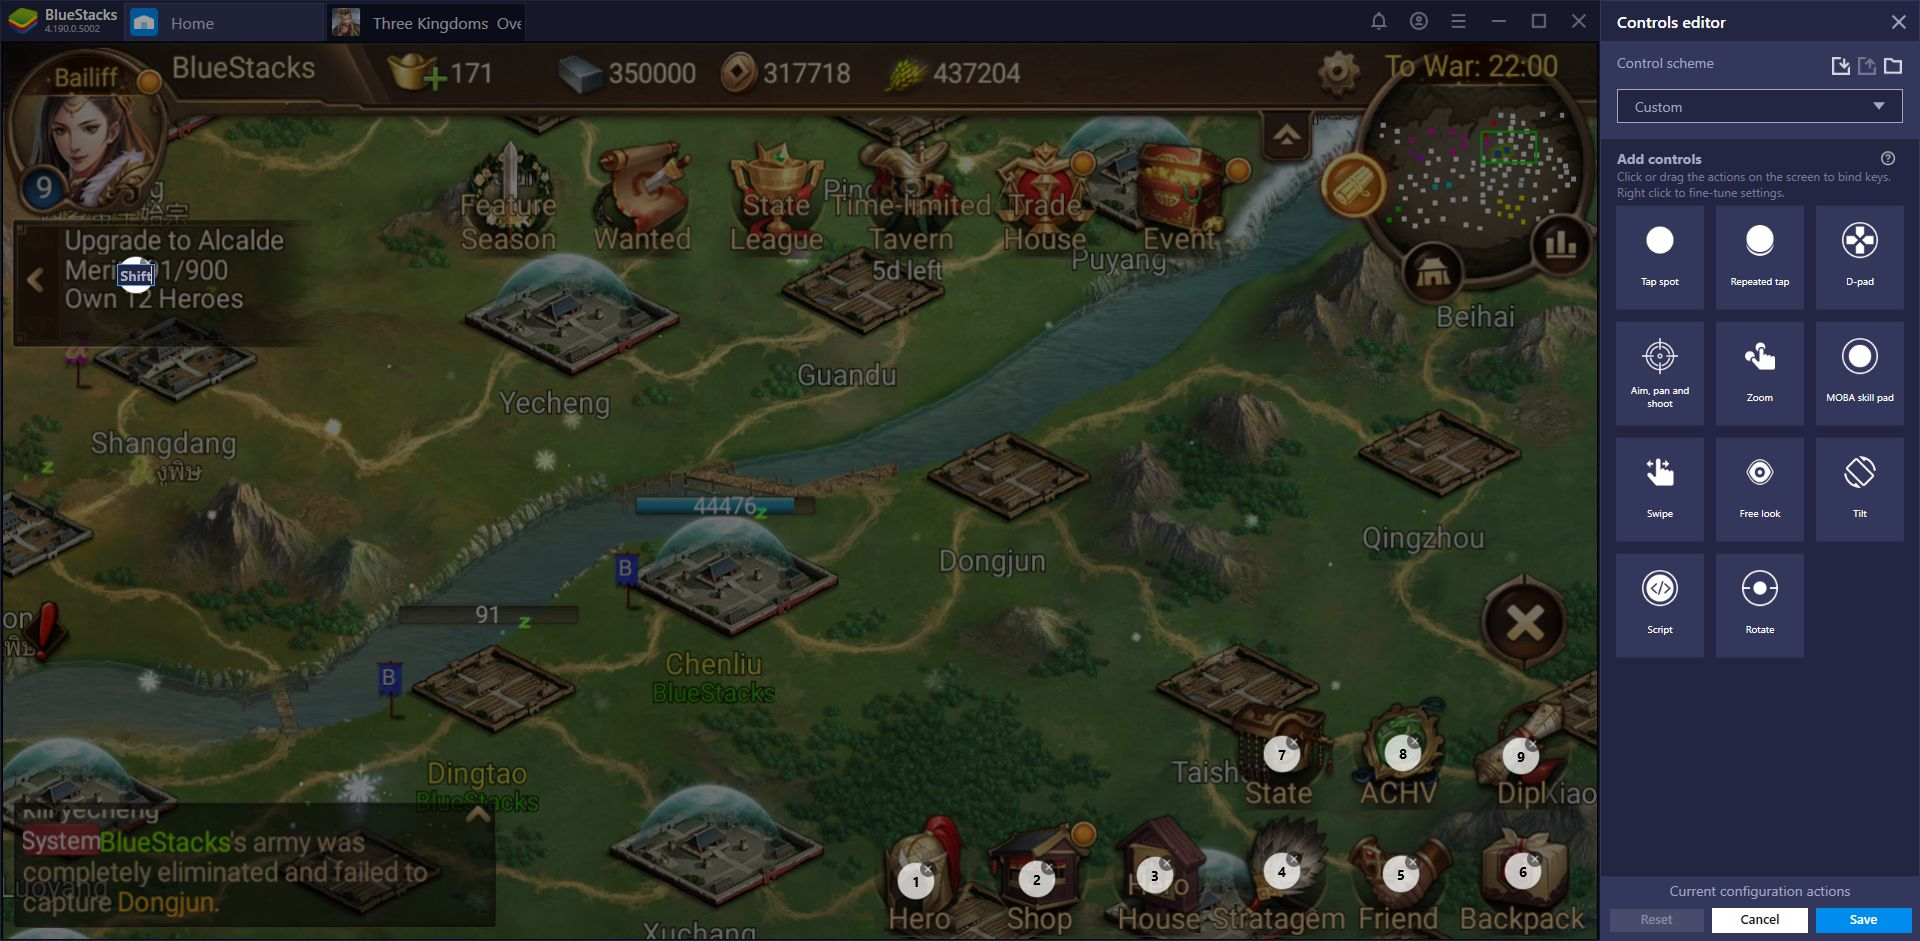 Three Kingdoms: Overlord - Tips and Tricks for Playing on BlueStacks